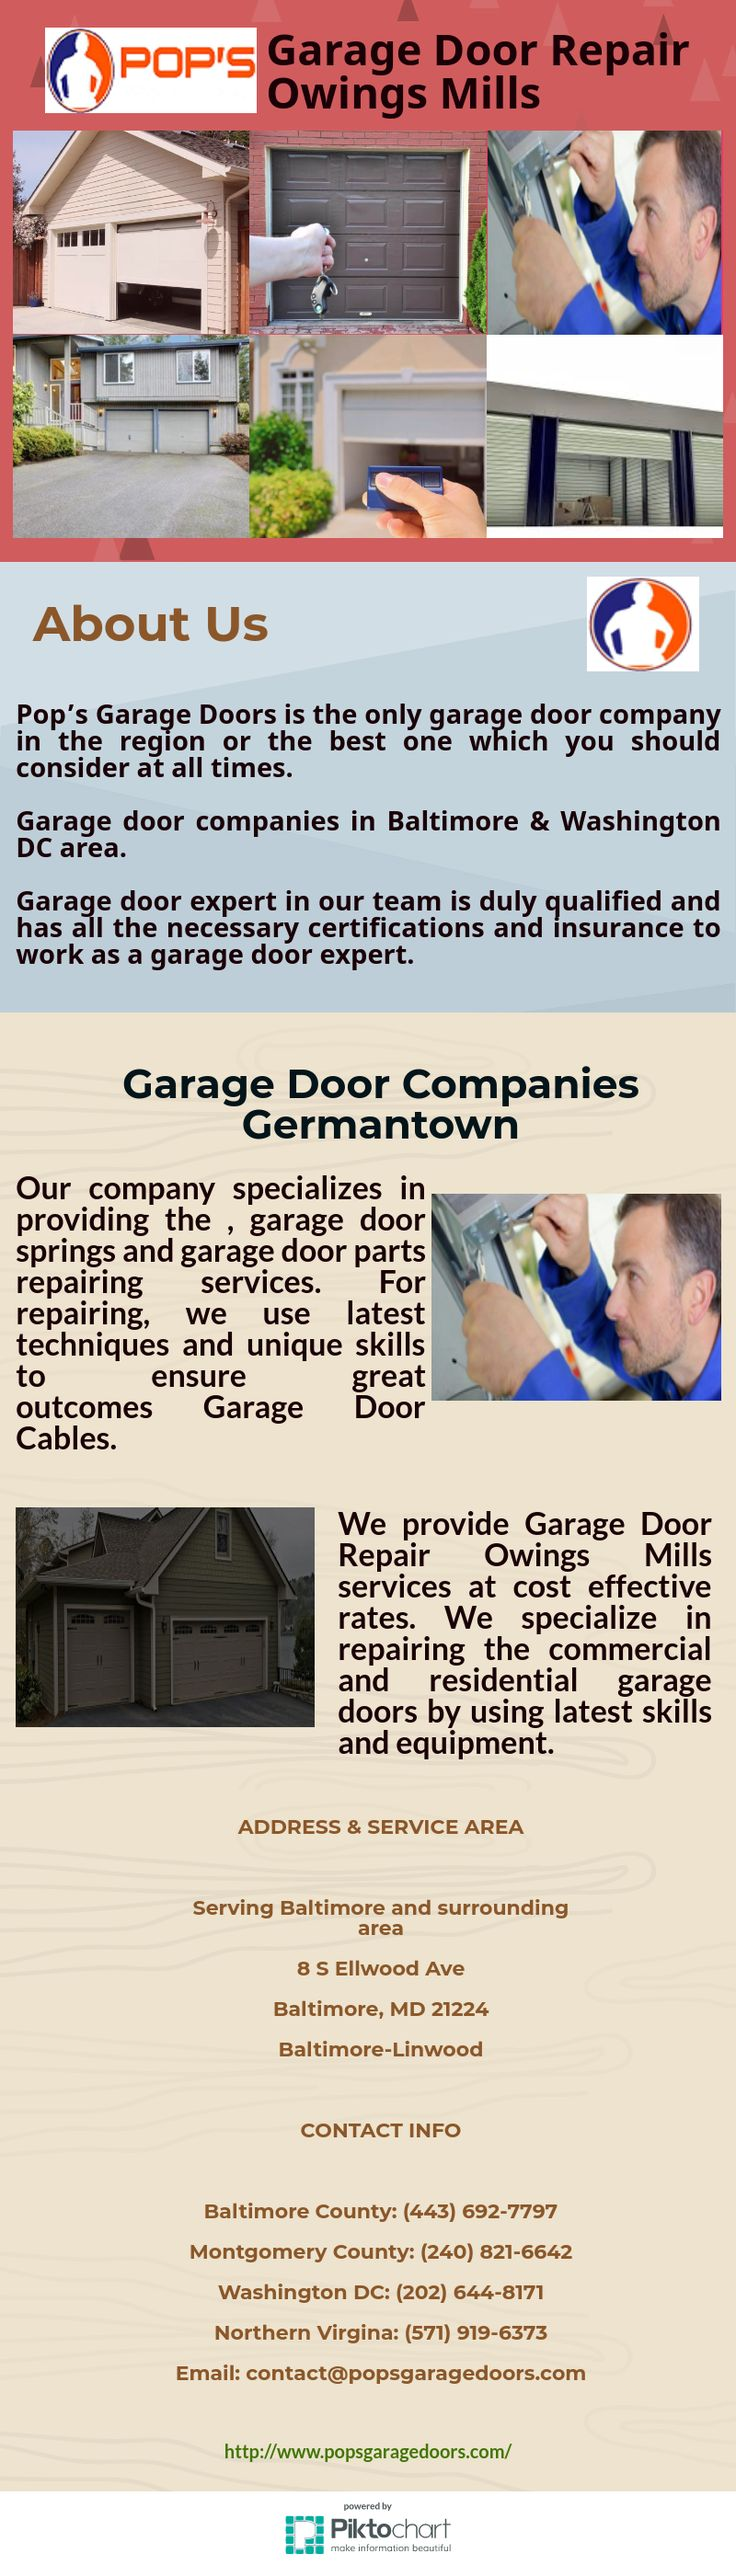 Our company specializes in providing the Garage Door Cables, garage door springs and garage door parts repairing services. For repairing, we use latest techniques and unique skills to ensure great outcomes.